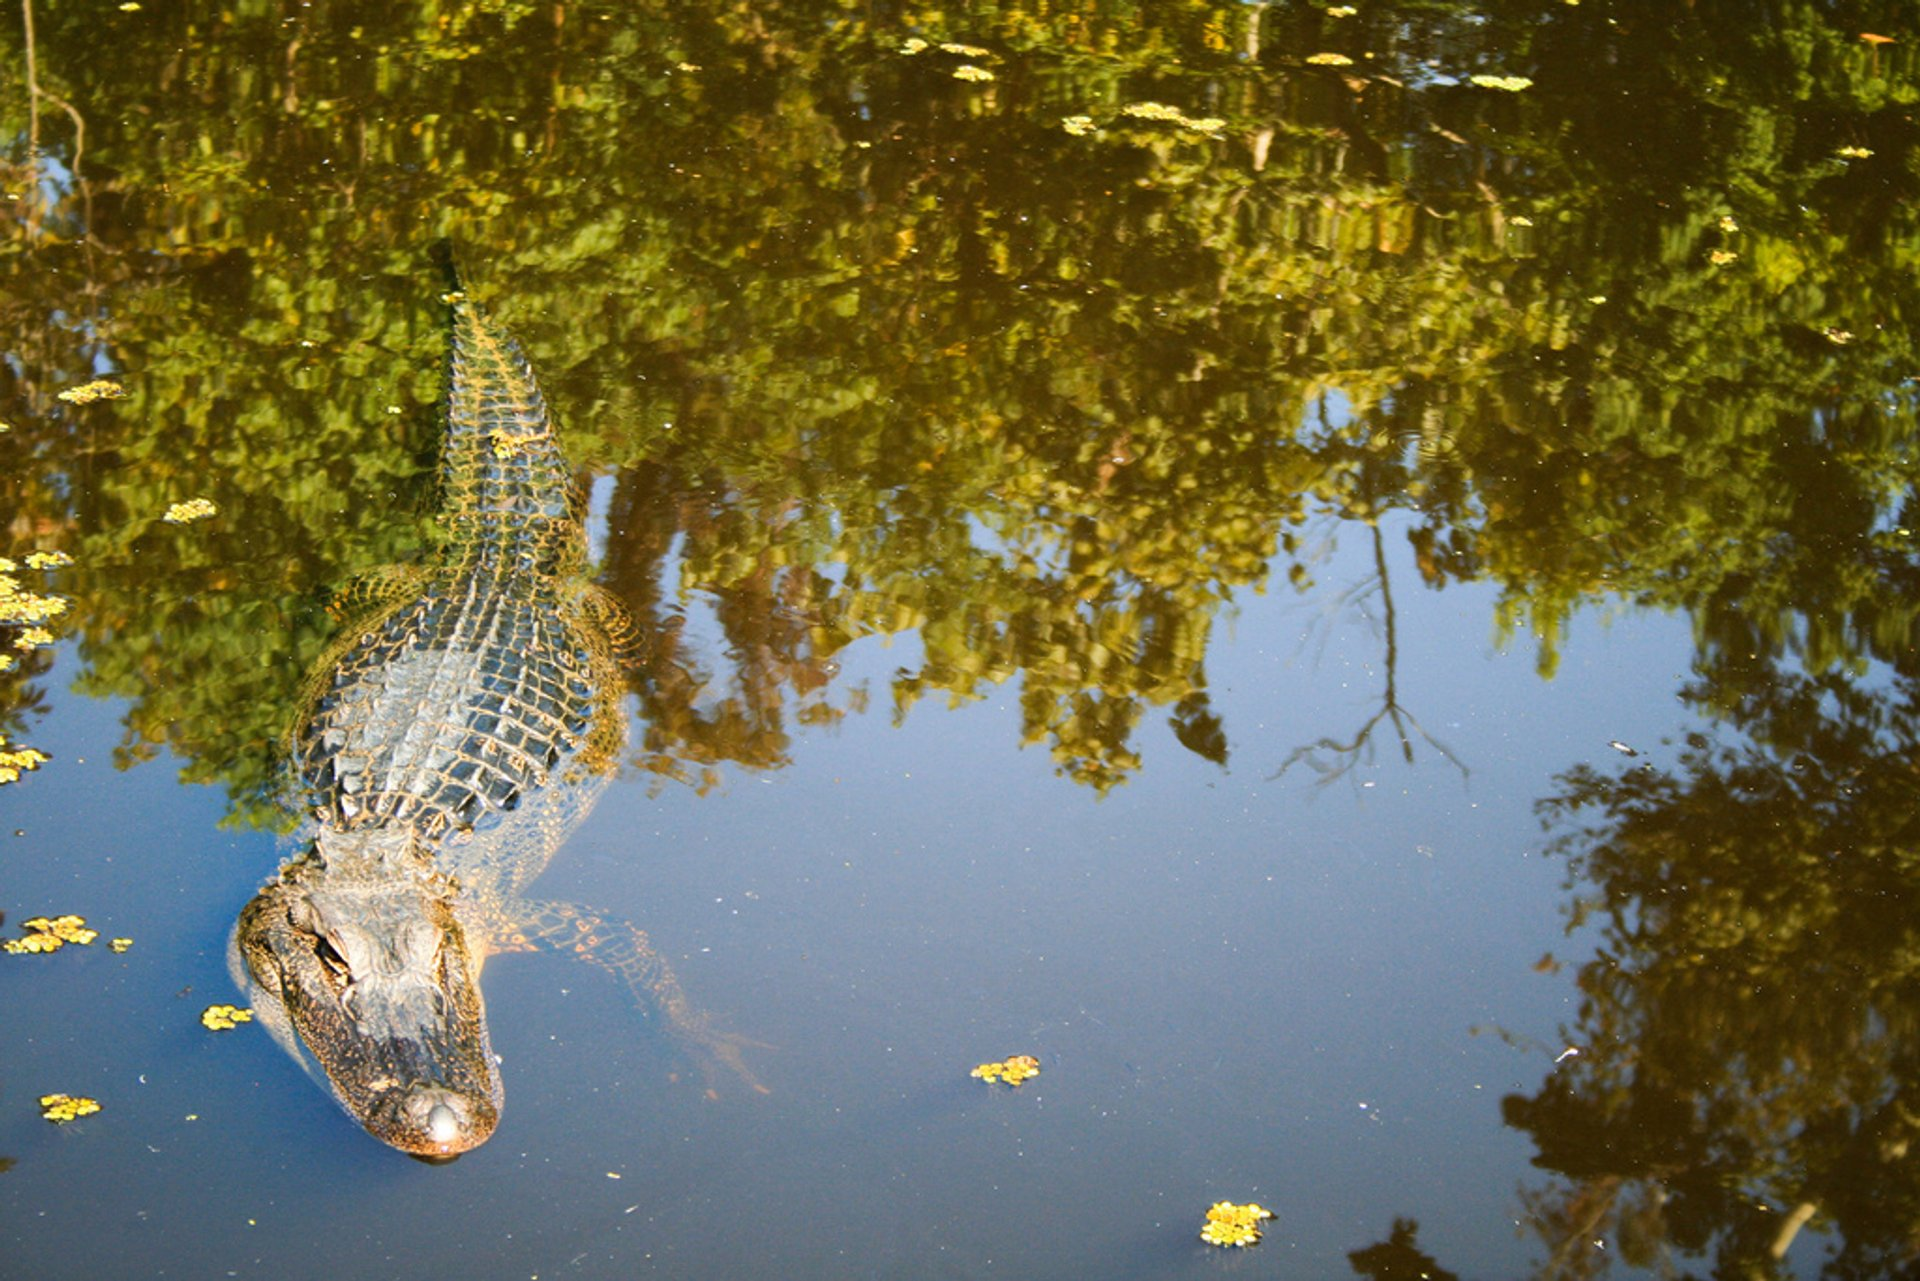 Wild Alligator in New Orleans - Best Season 2020